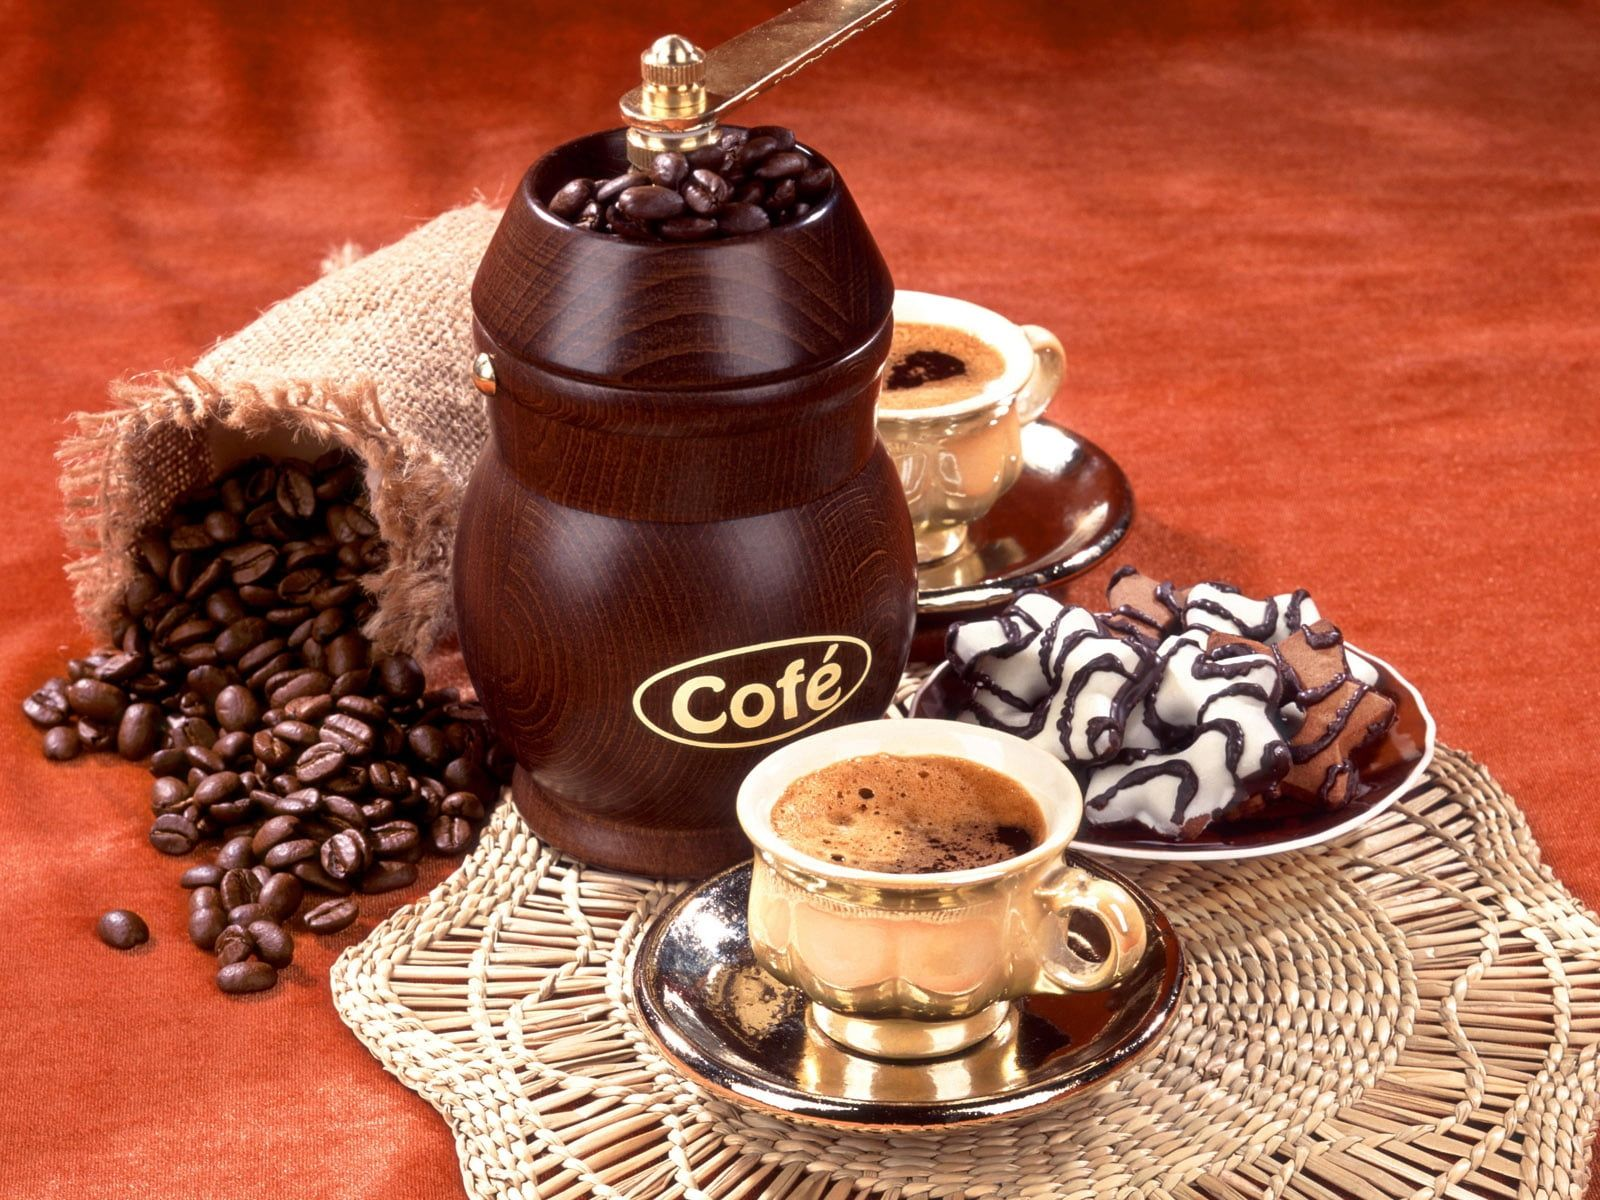 Brown Cofe Coffee Grinder And Cup Coffee Beans Coffee Coffee Grinder Cookies 720p Wallpaper Hdwallpaper Desktop Coffee Time Chocolate Coffee Coffee Cafe